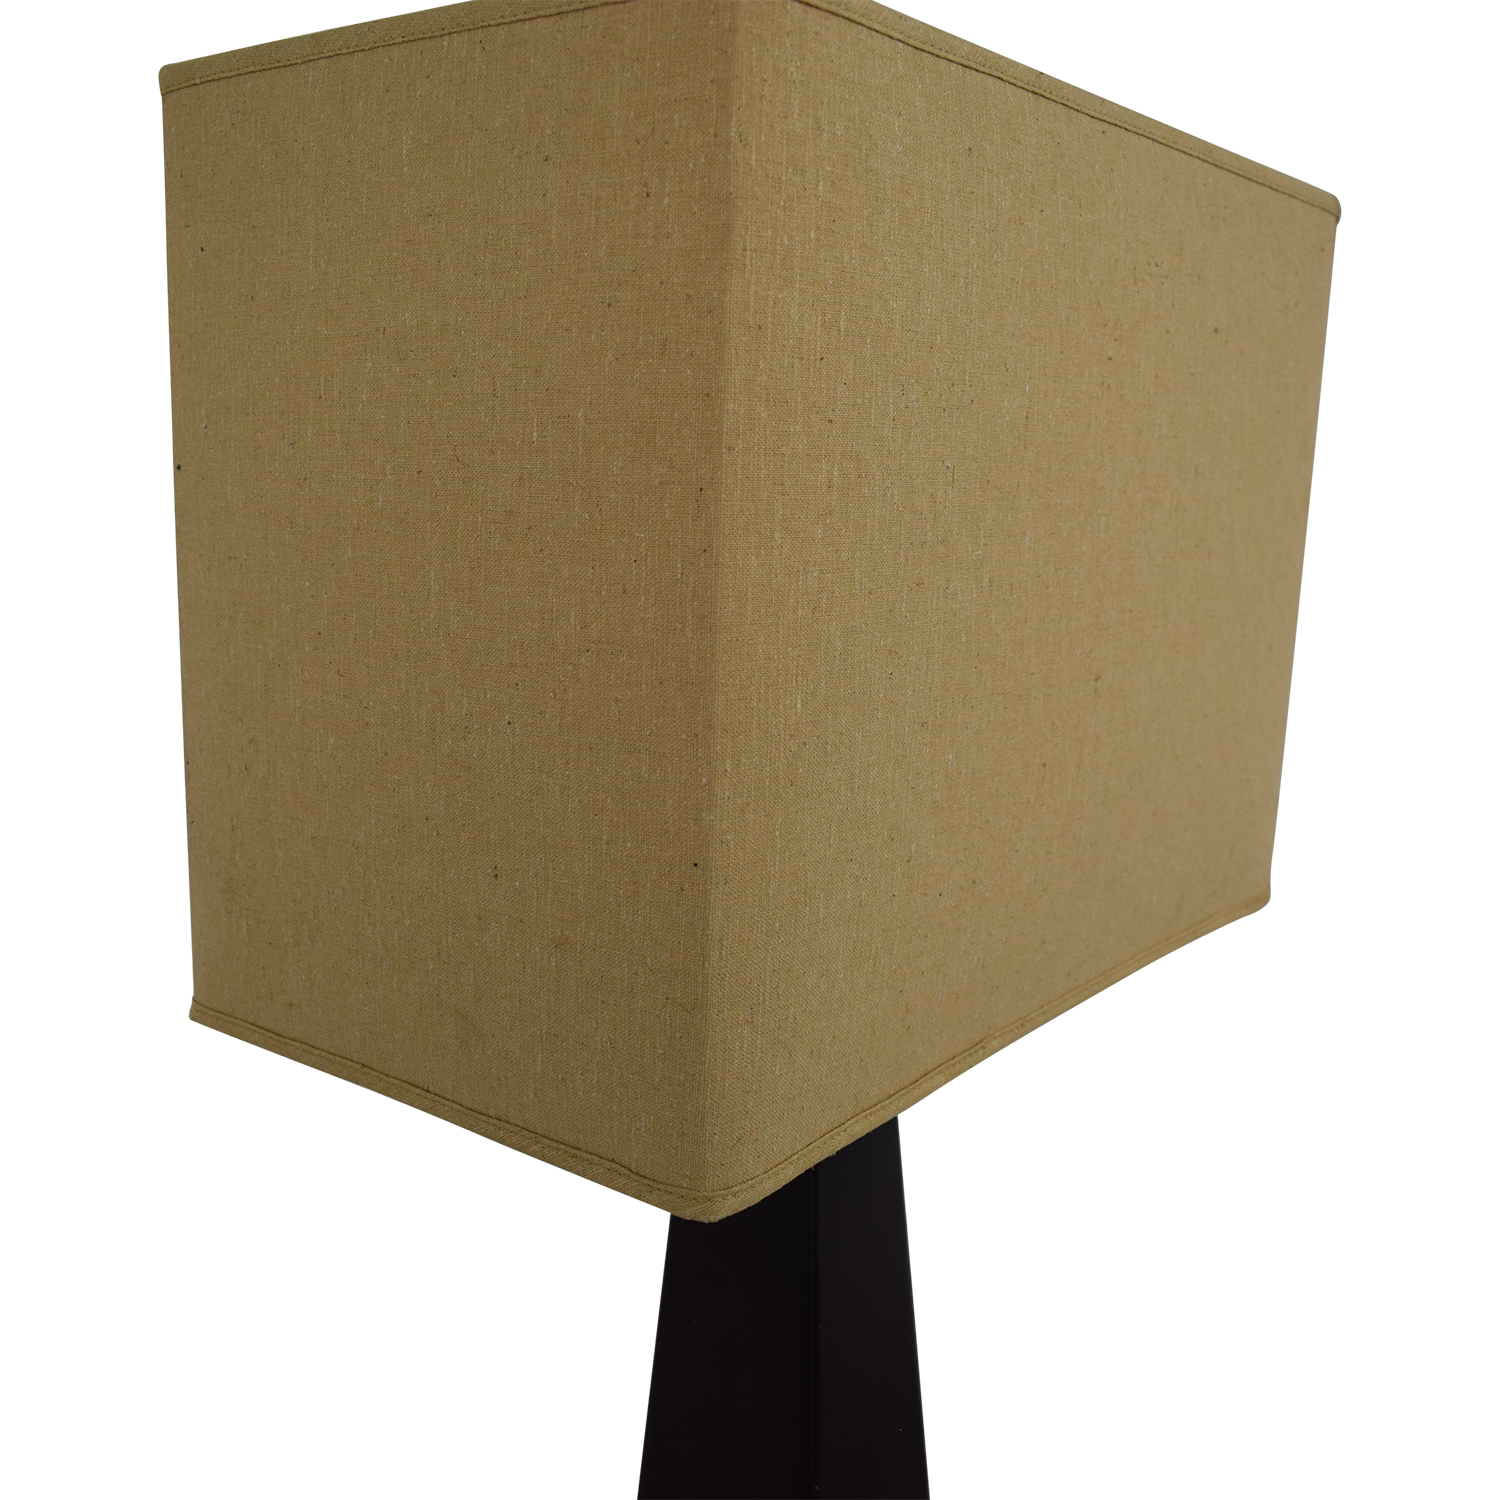 buy Tarogo Triangular Wood Base Floor Lamp Tarogo